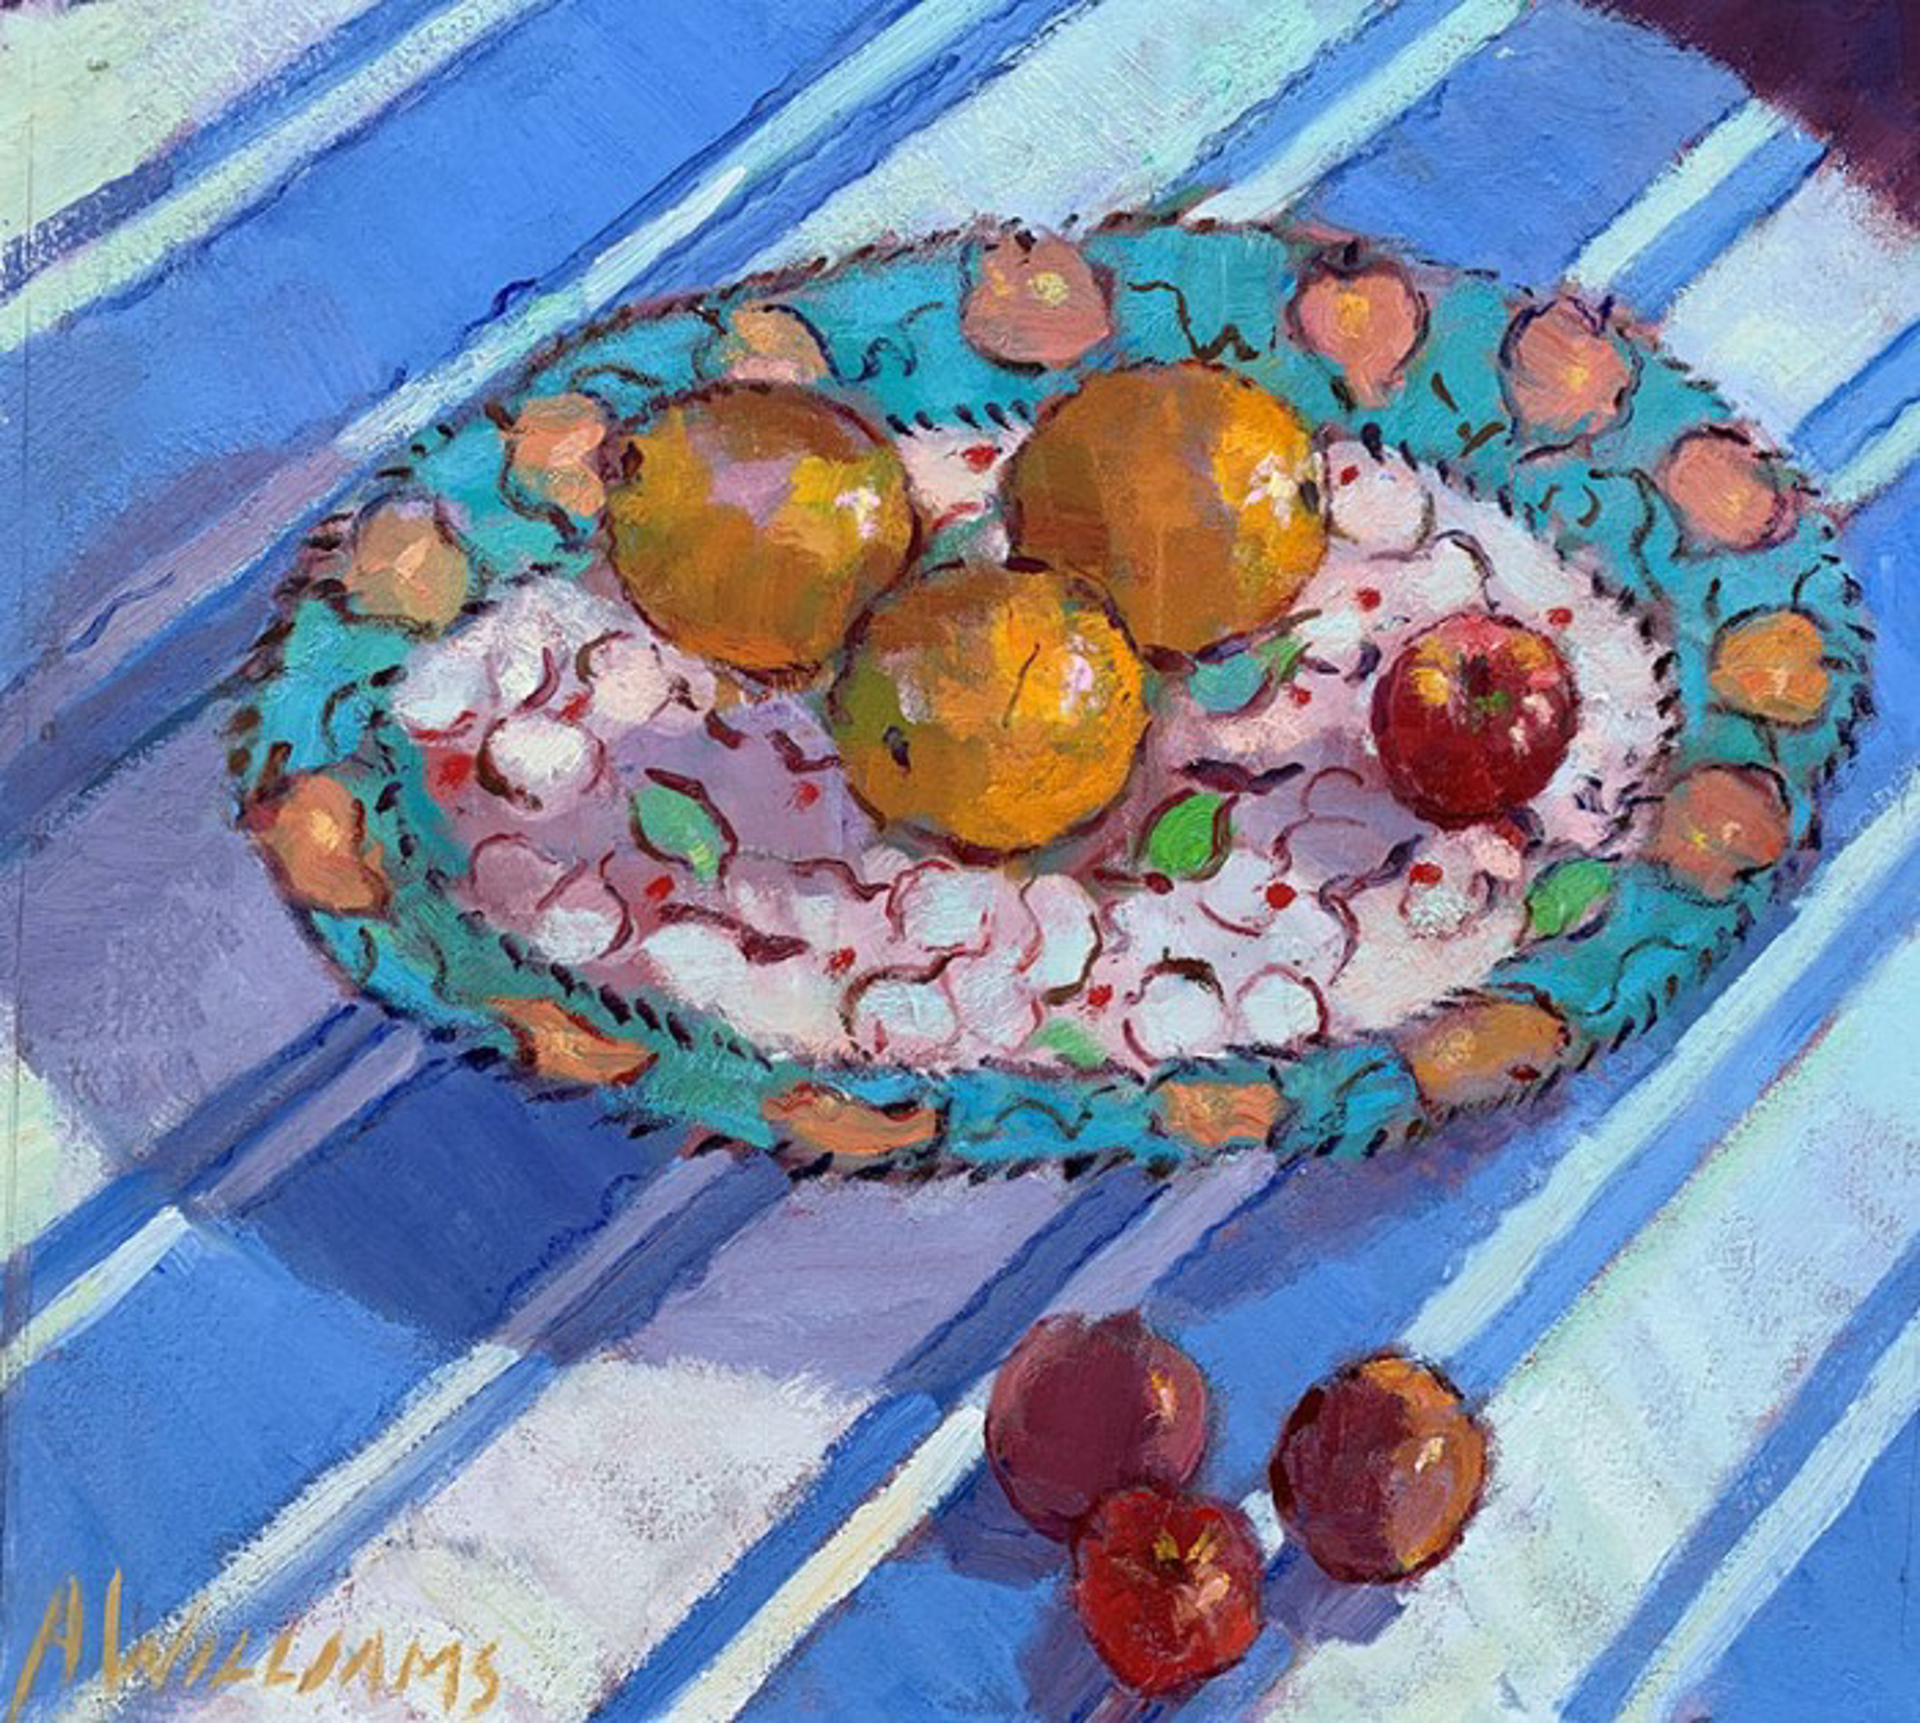 Juanita's Platter by Alice Williams